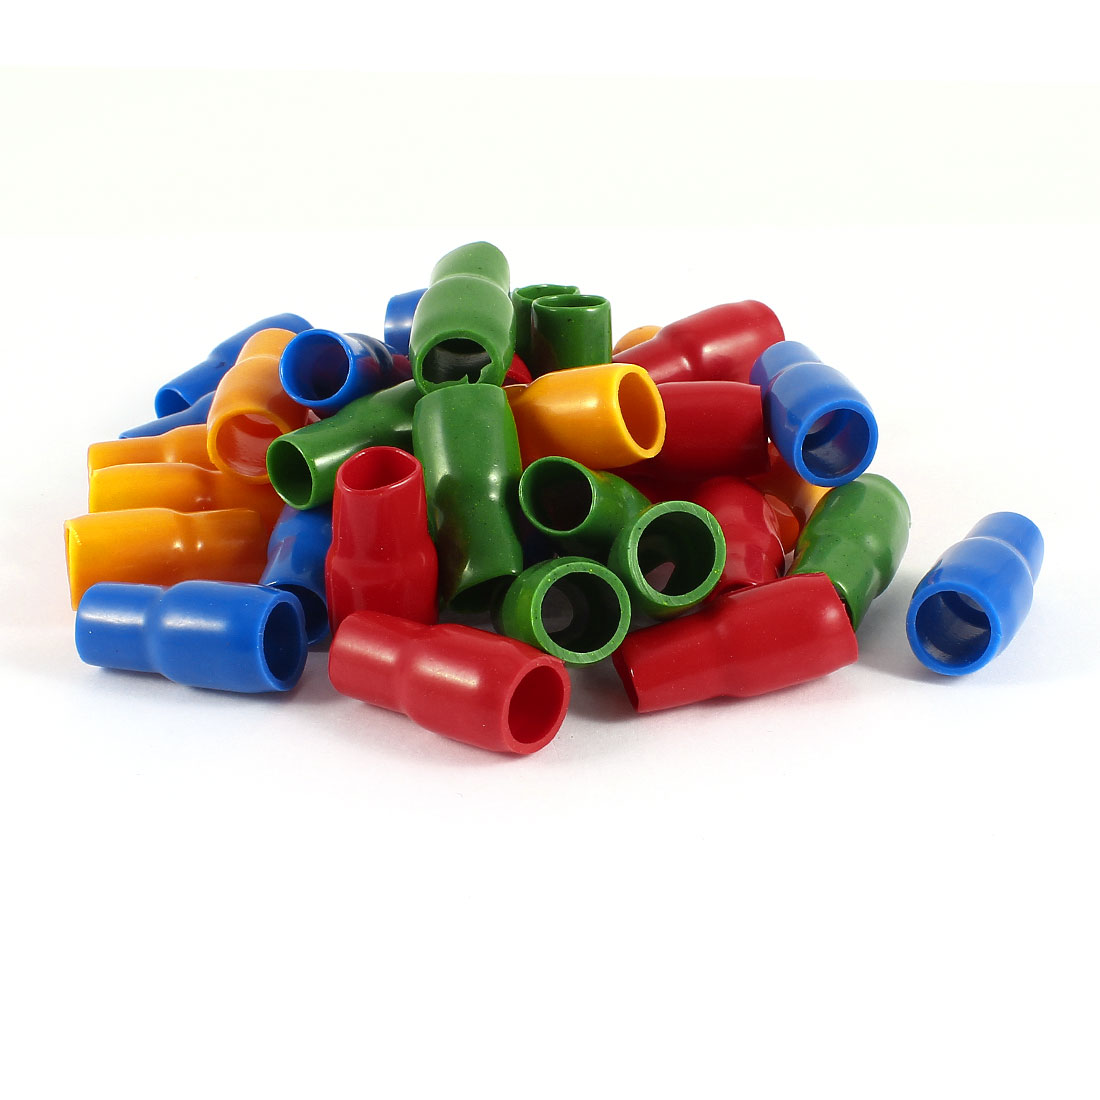 40 Pcs Soft PVC Wire V-22 25mm2 Crimp Terminal End Insulated Sleeves Cover Green Red Blue Orange